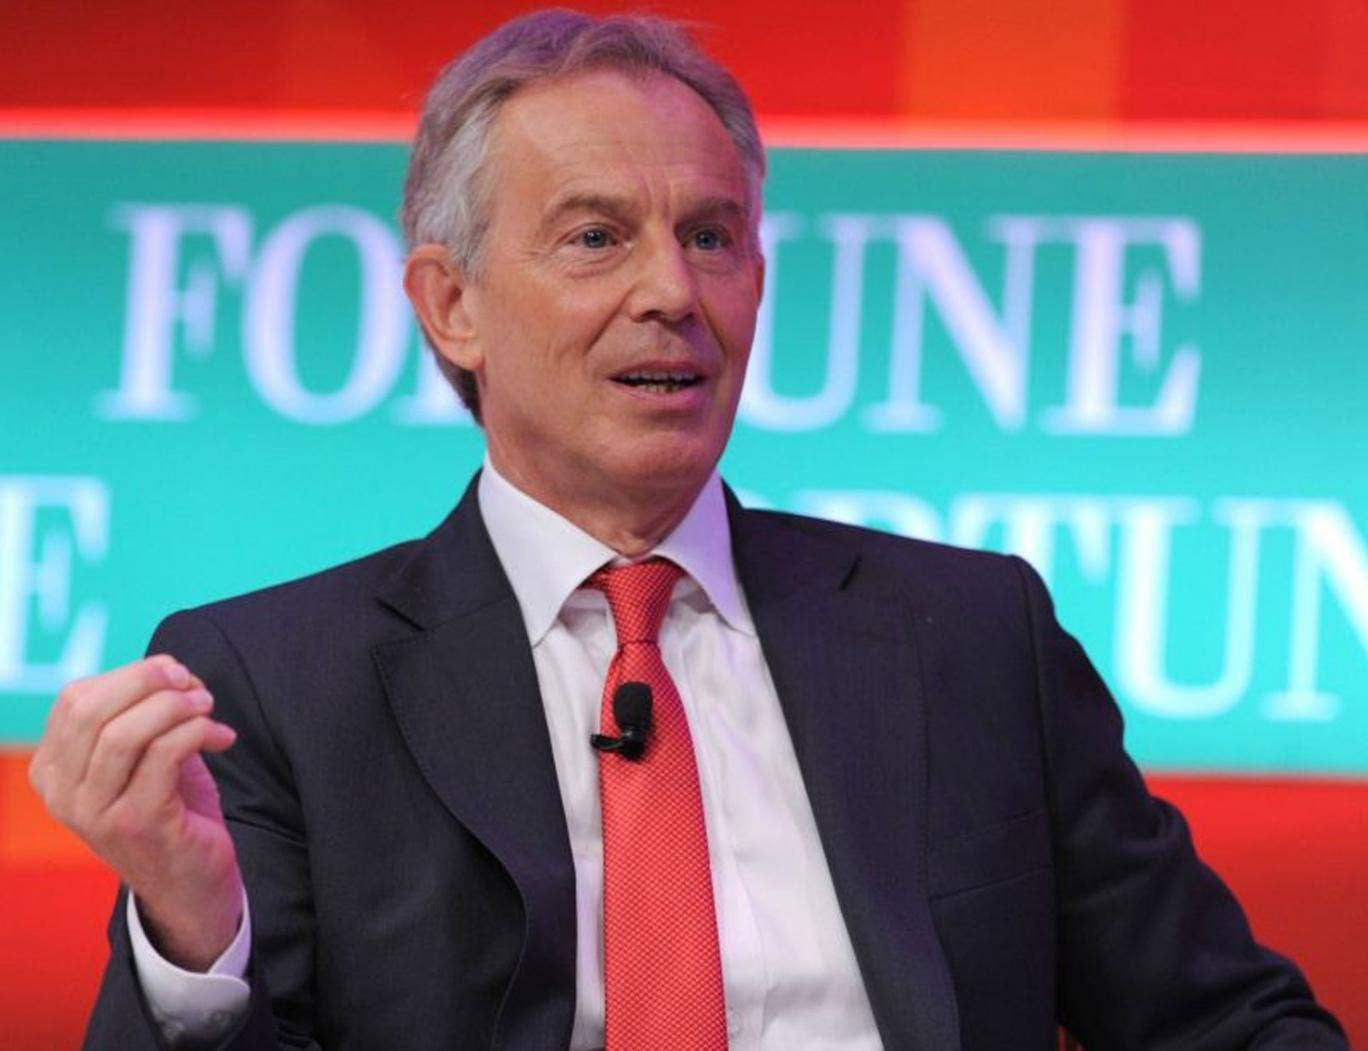 Tony Blair has said the Government should consider imposing a no-fly zone over Syria